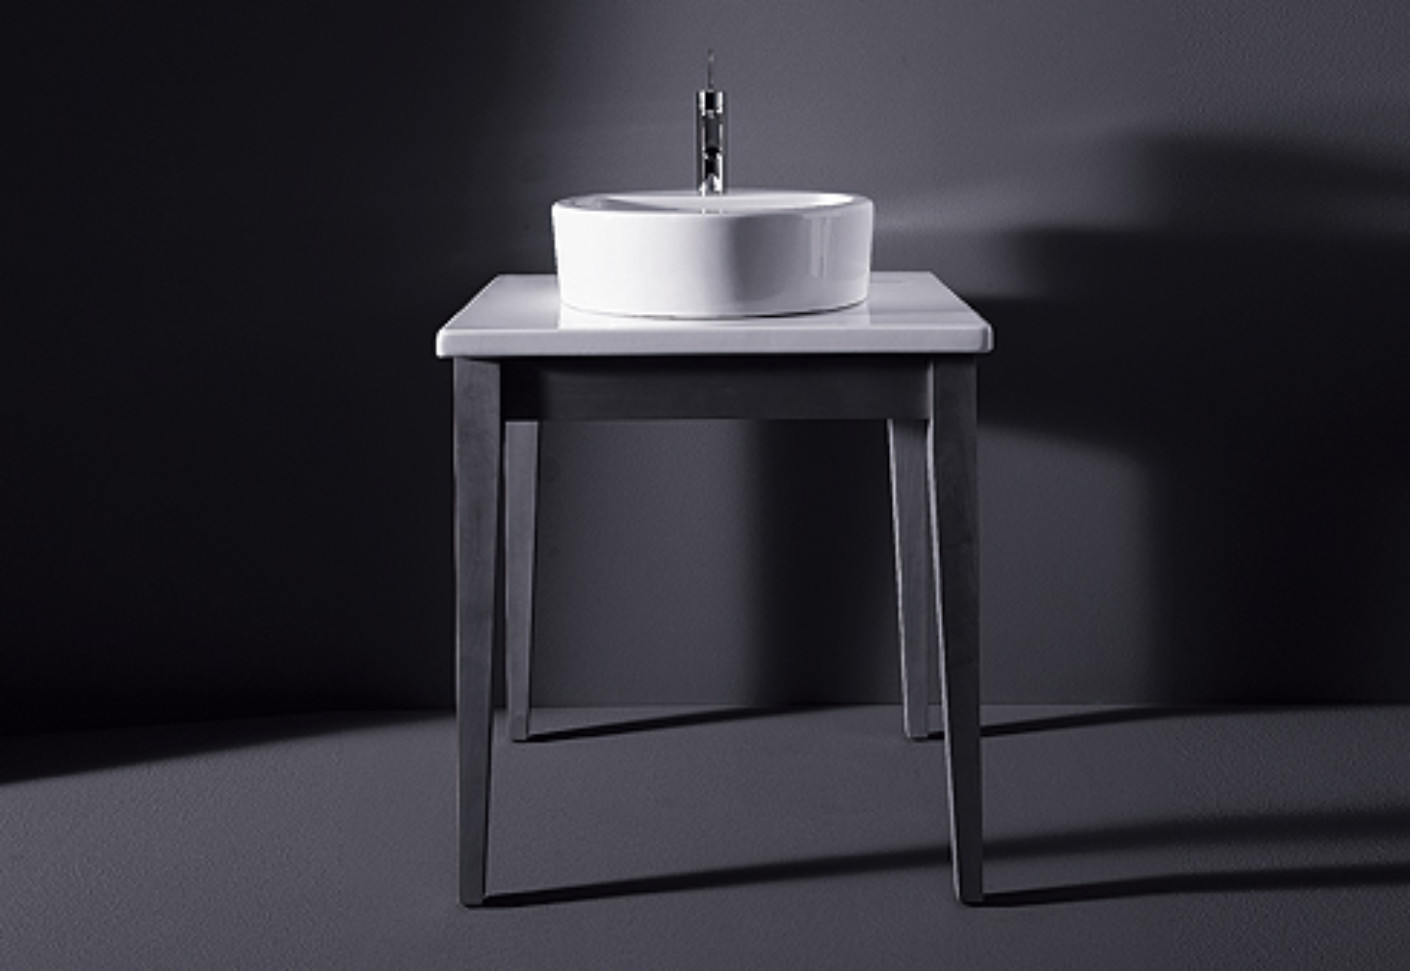 starck 1 washbasin by duravit stylepark. Black Bedroom Furniture Sets. Home Design Ideas